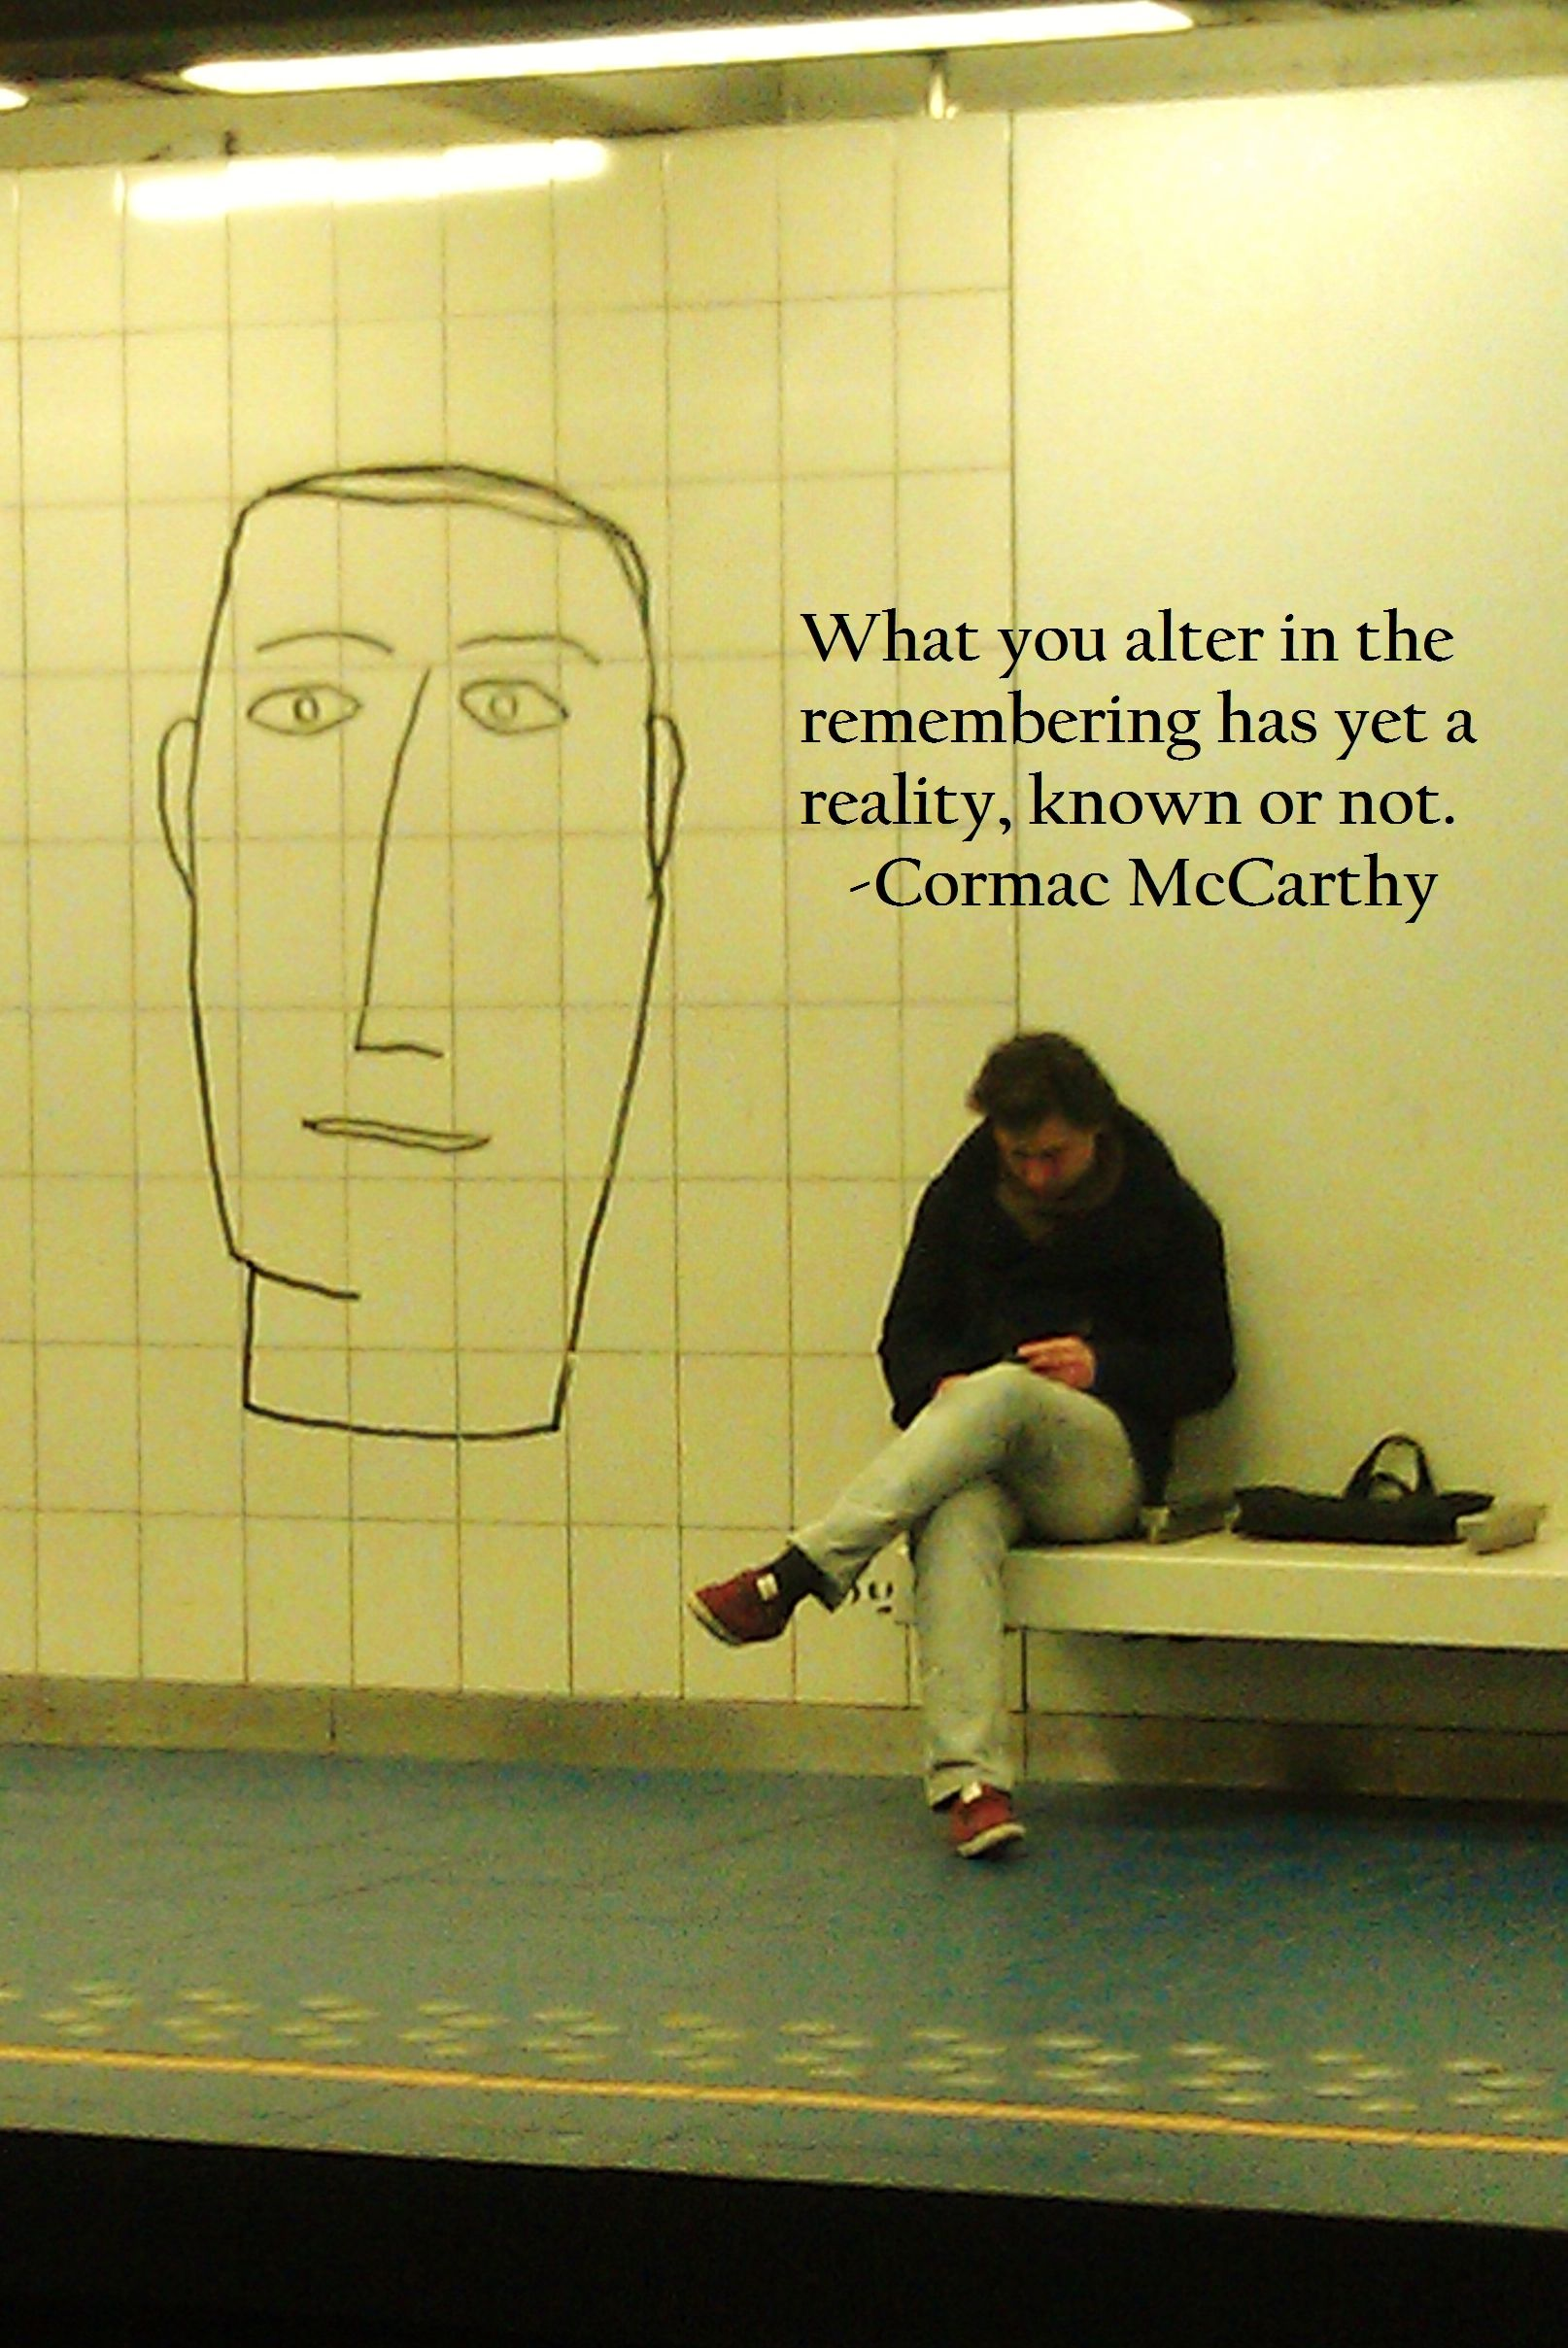 Cormac Mccarthy Libros A Picture I Took In Brussels Belgium 43 My Favorite Quote